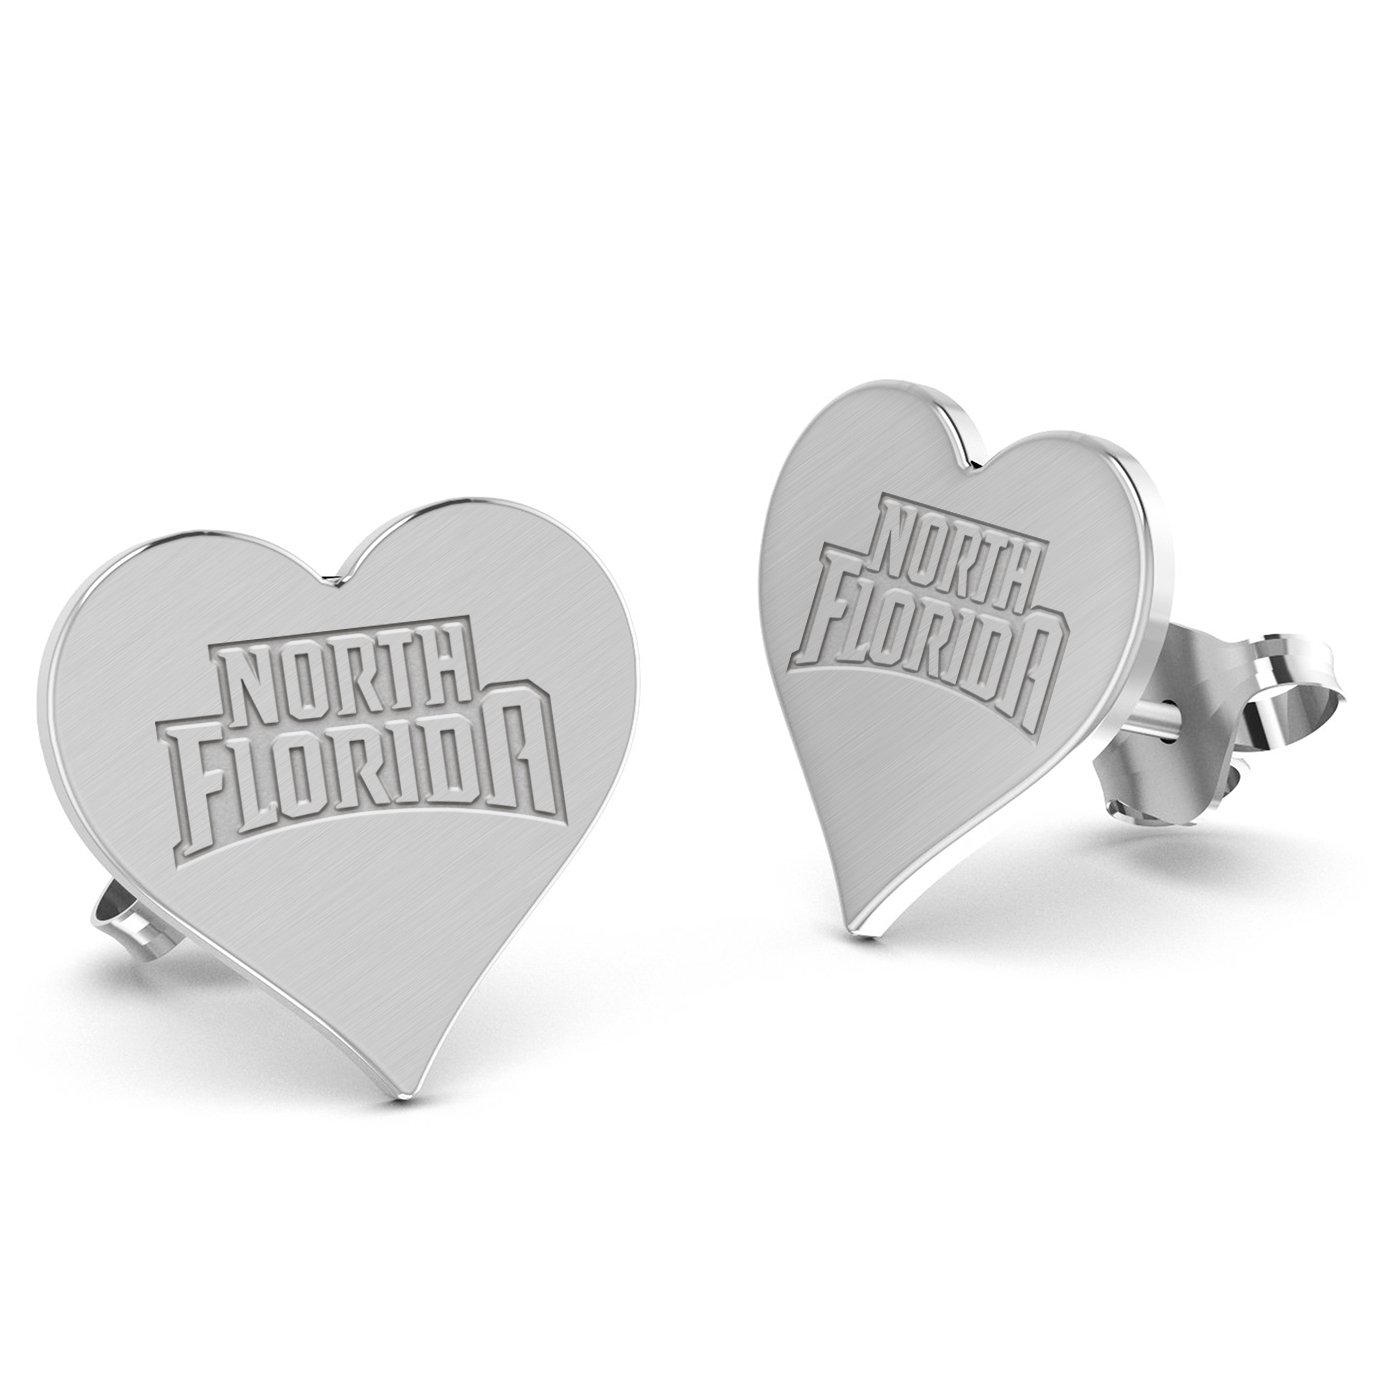 University of North Florida Ospreys Heart Stud Earring See Image on Model for Size Reference